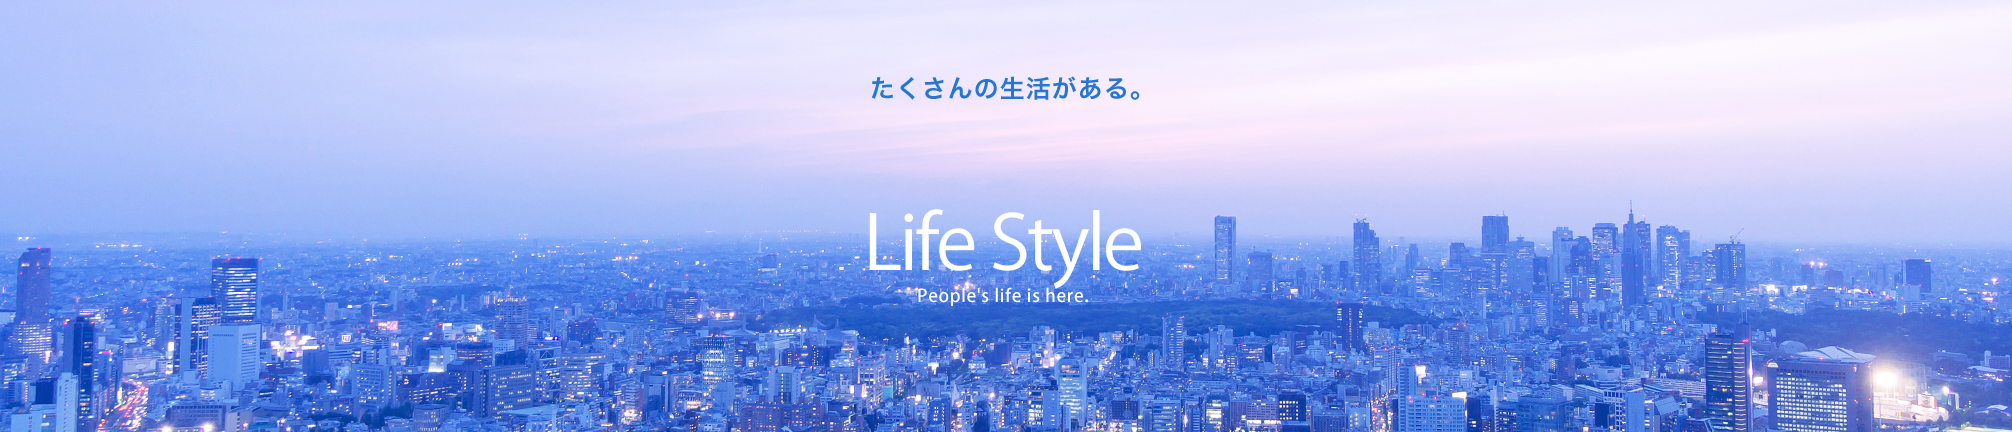 たくさんの生活がある。Life Style People's life is here.